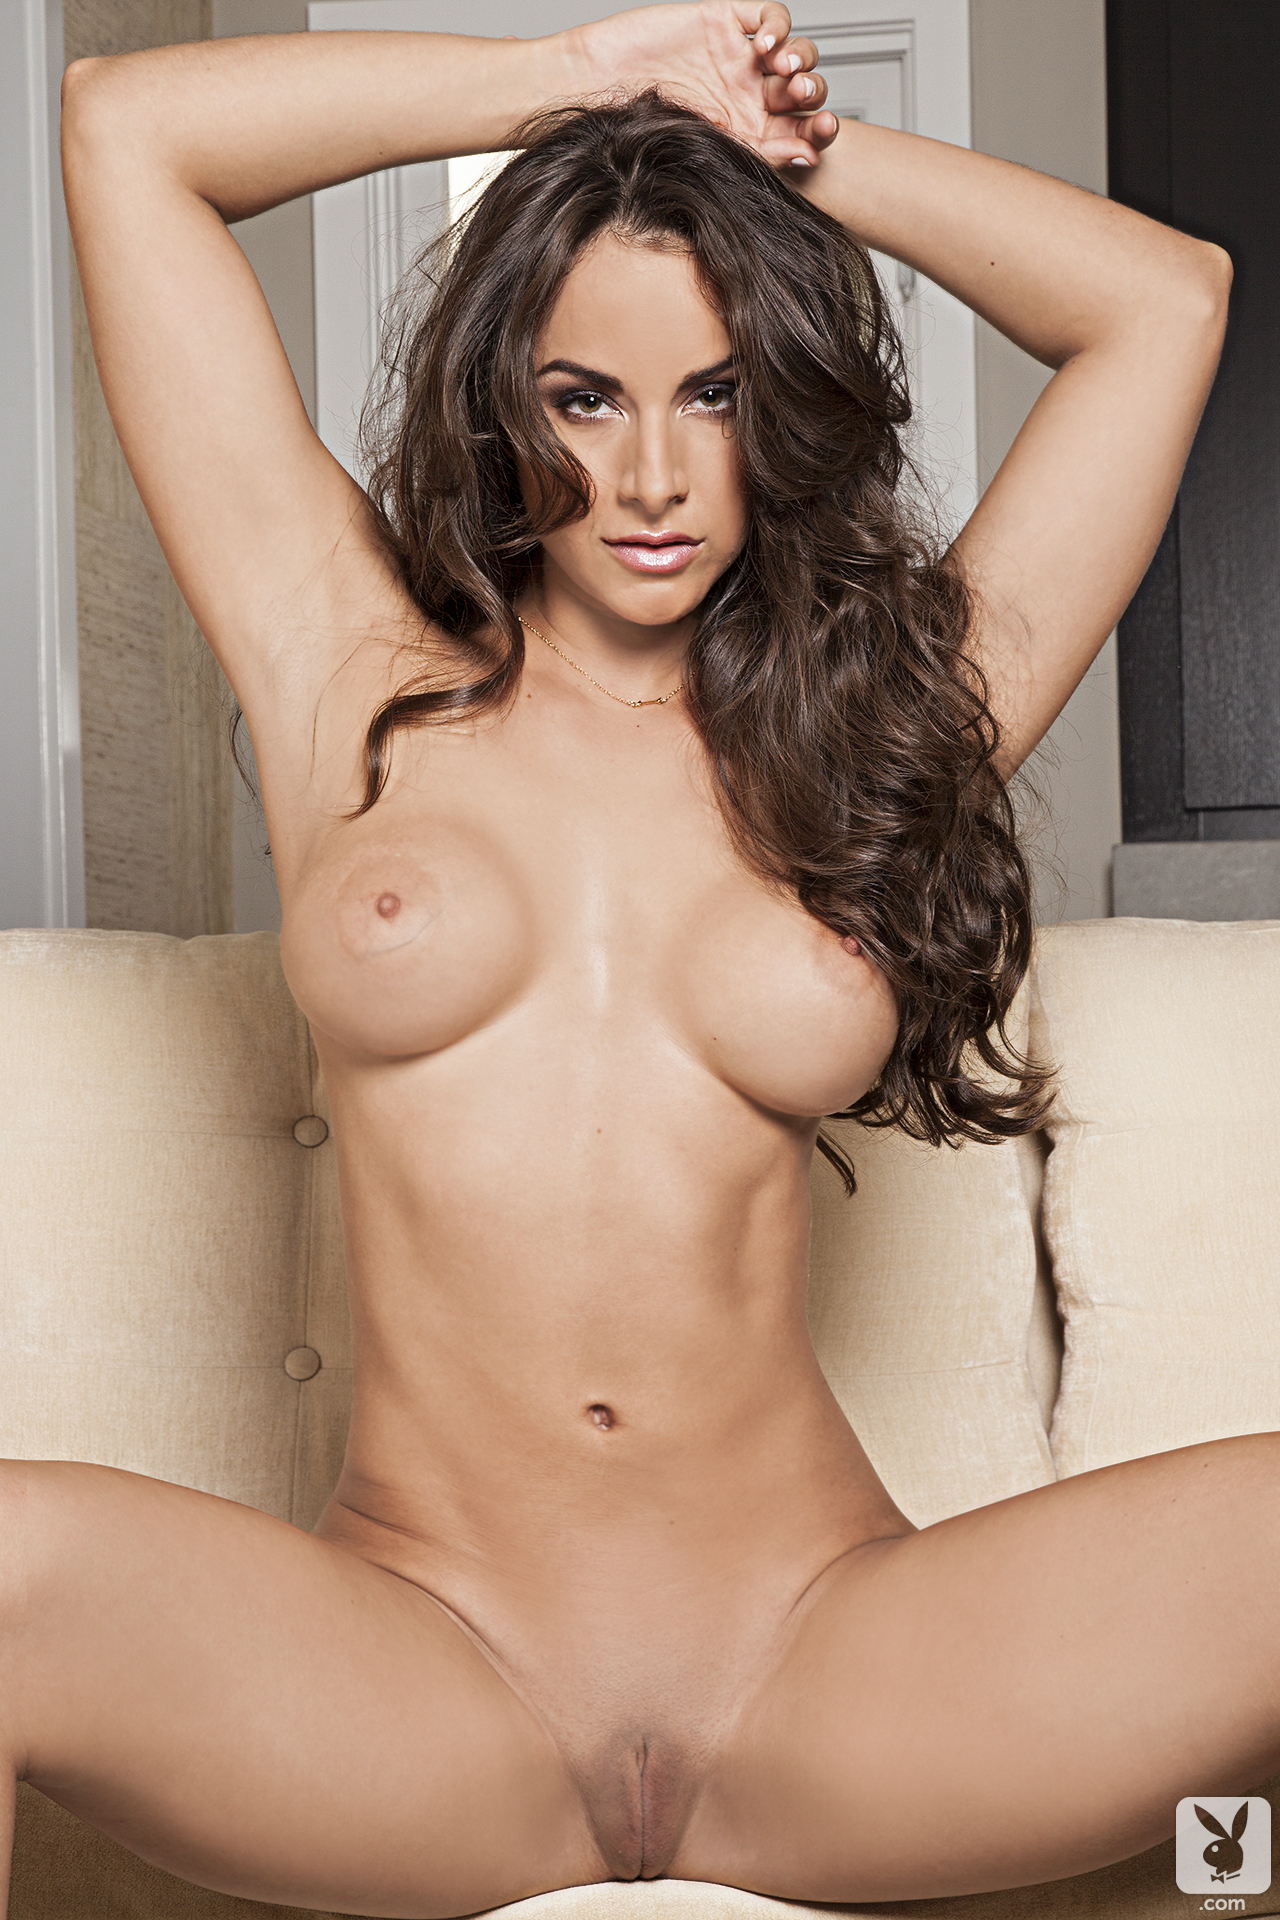 Want To See The Nude Video Of This Set Join Playboy Plus Now For